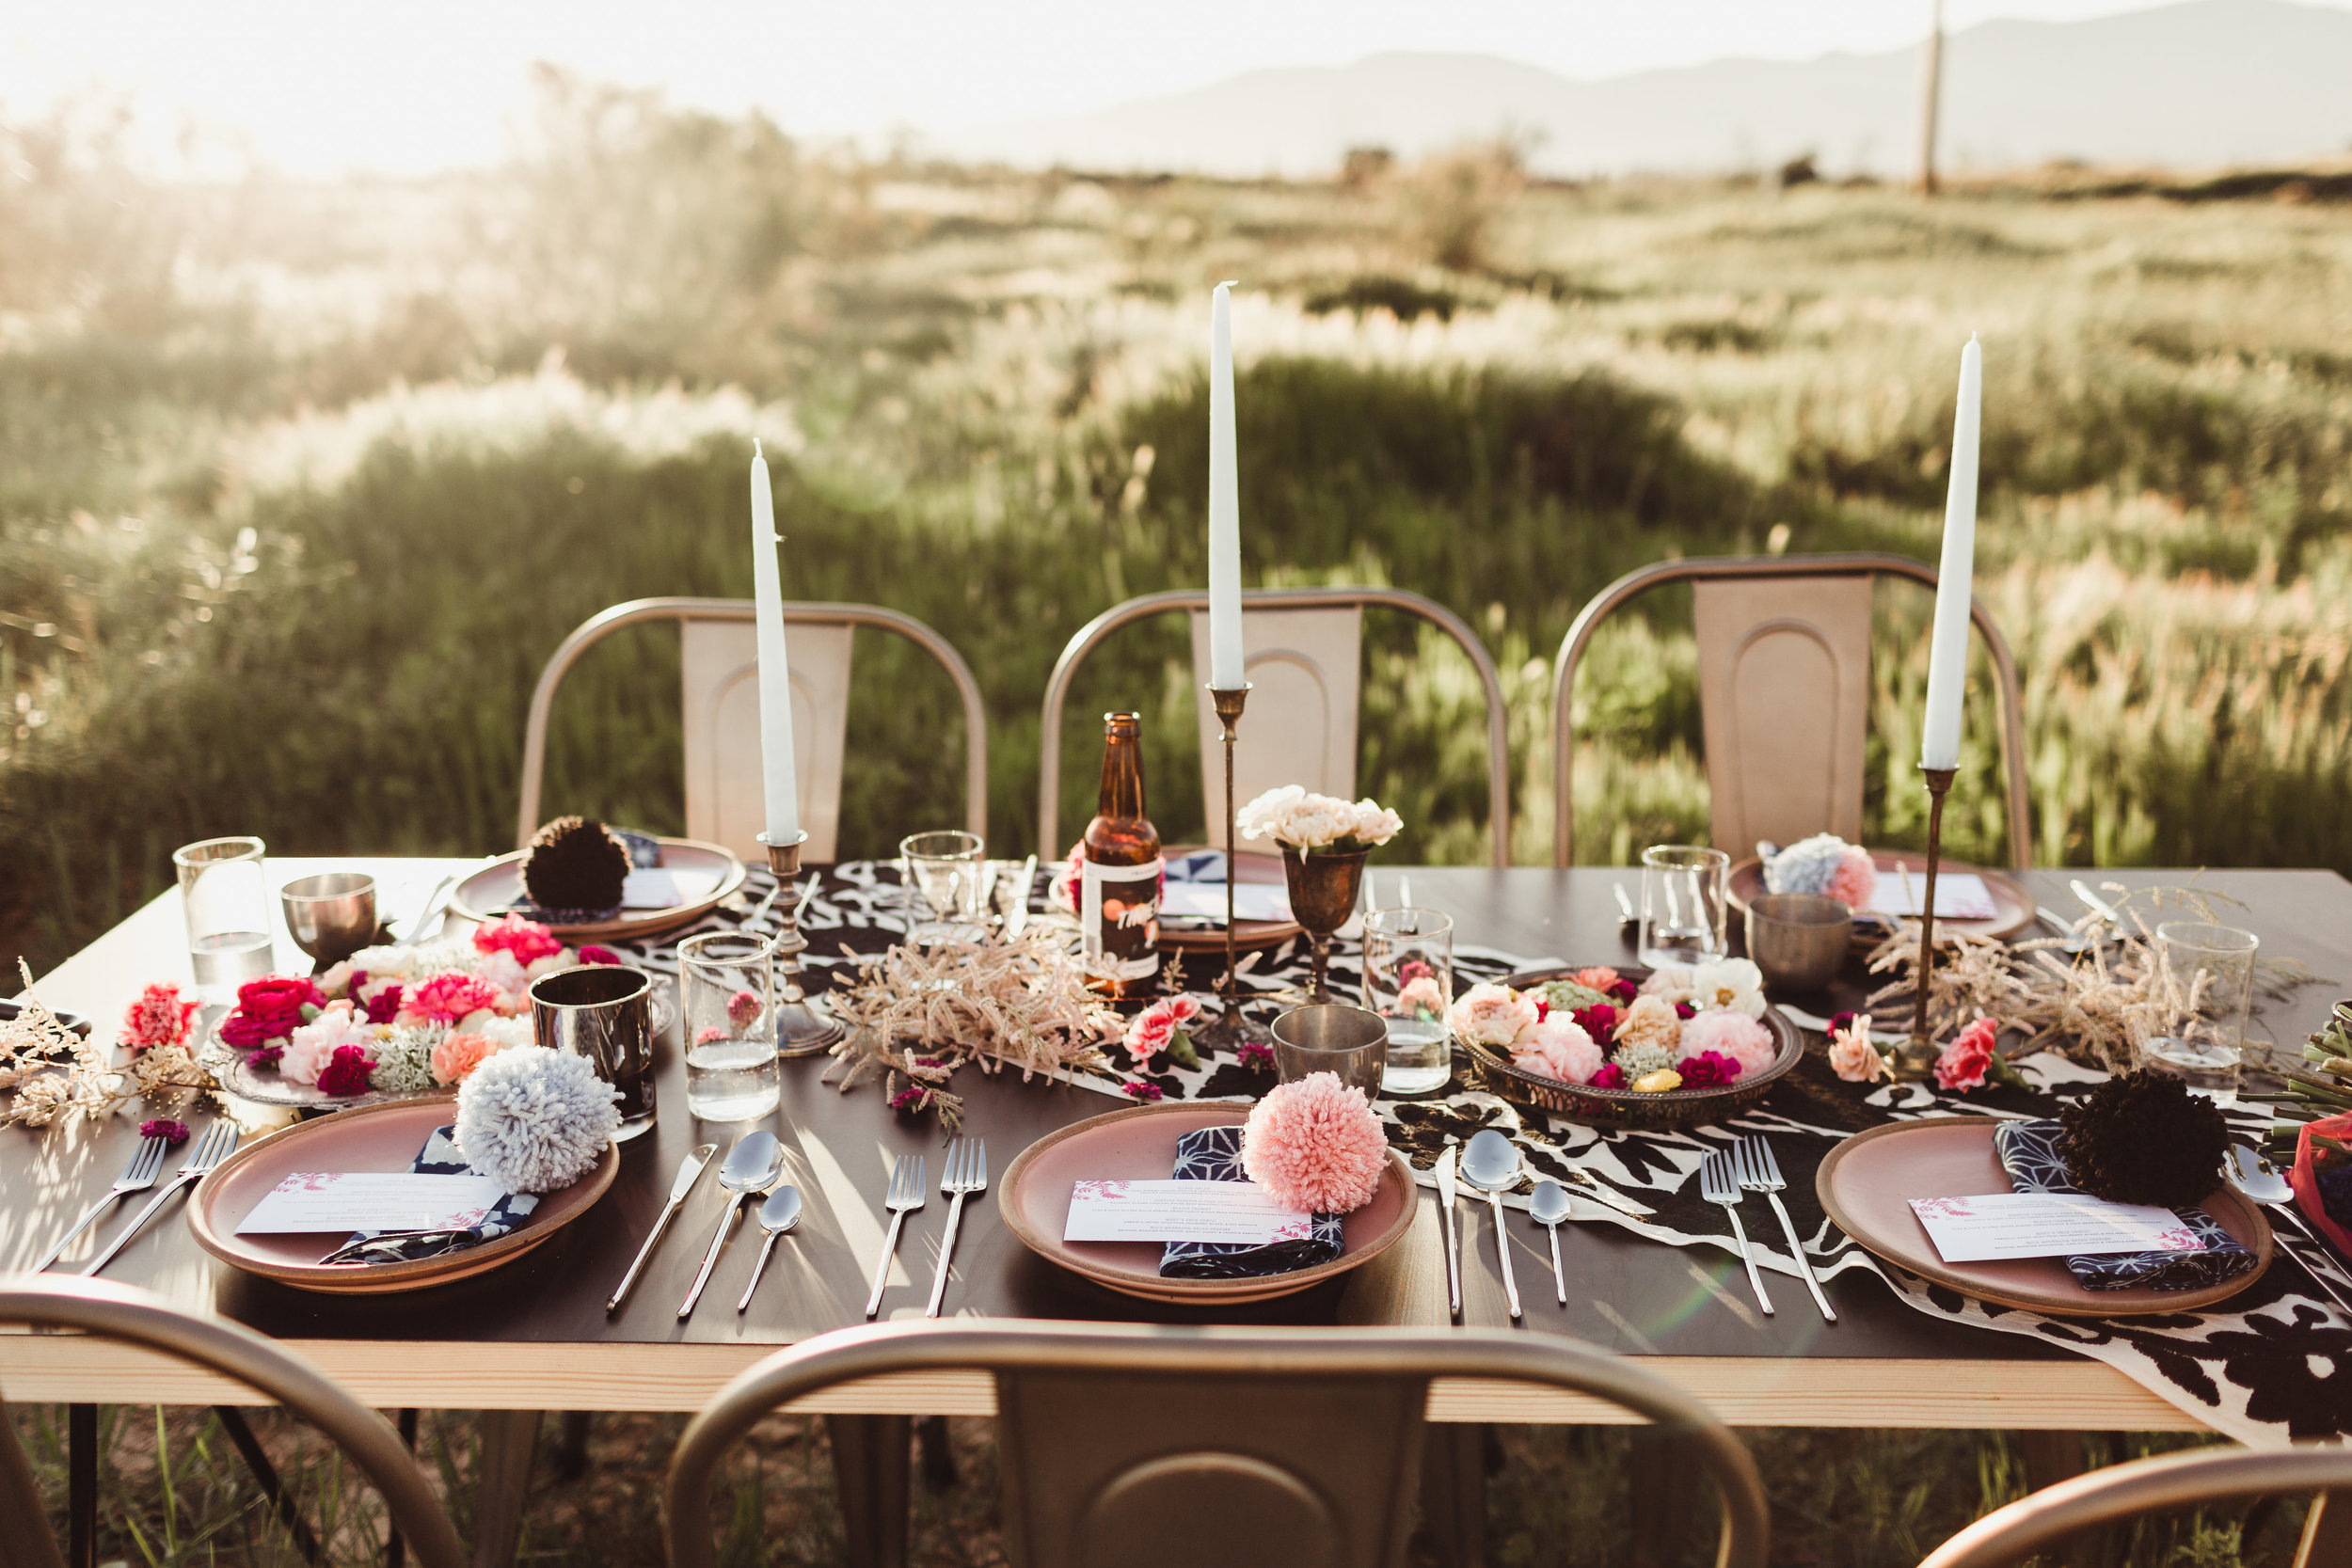 Jamie_English_Photography_Styled_Elopement_Valle_de_Guadalupe_Baja_California_Mexico_Luna_Wild_March_2017-91.jpg